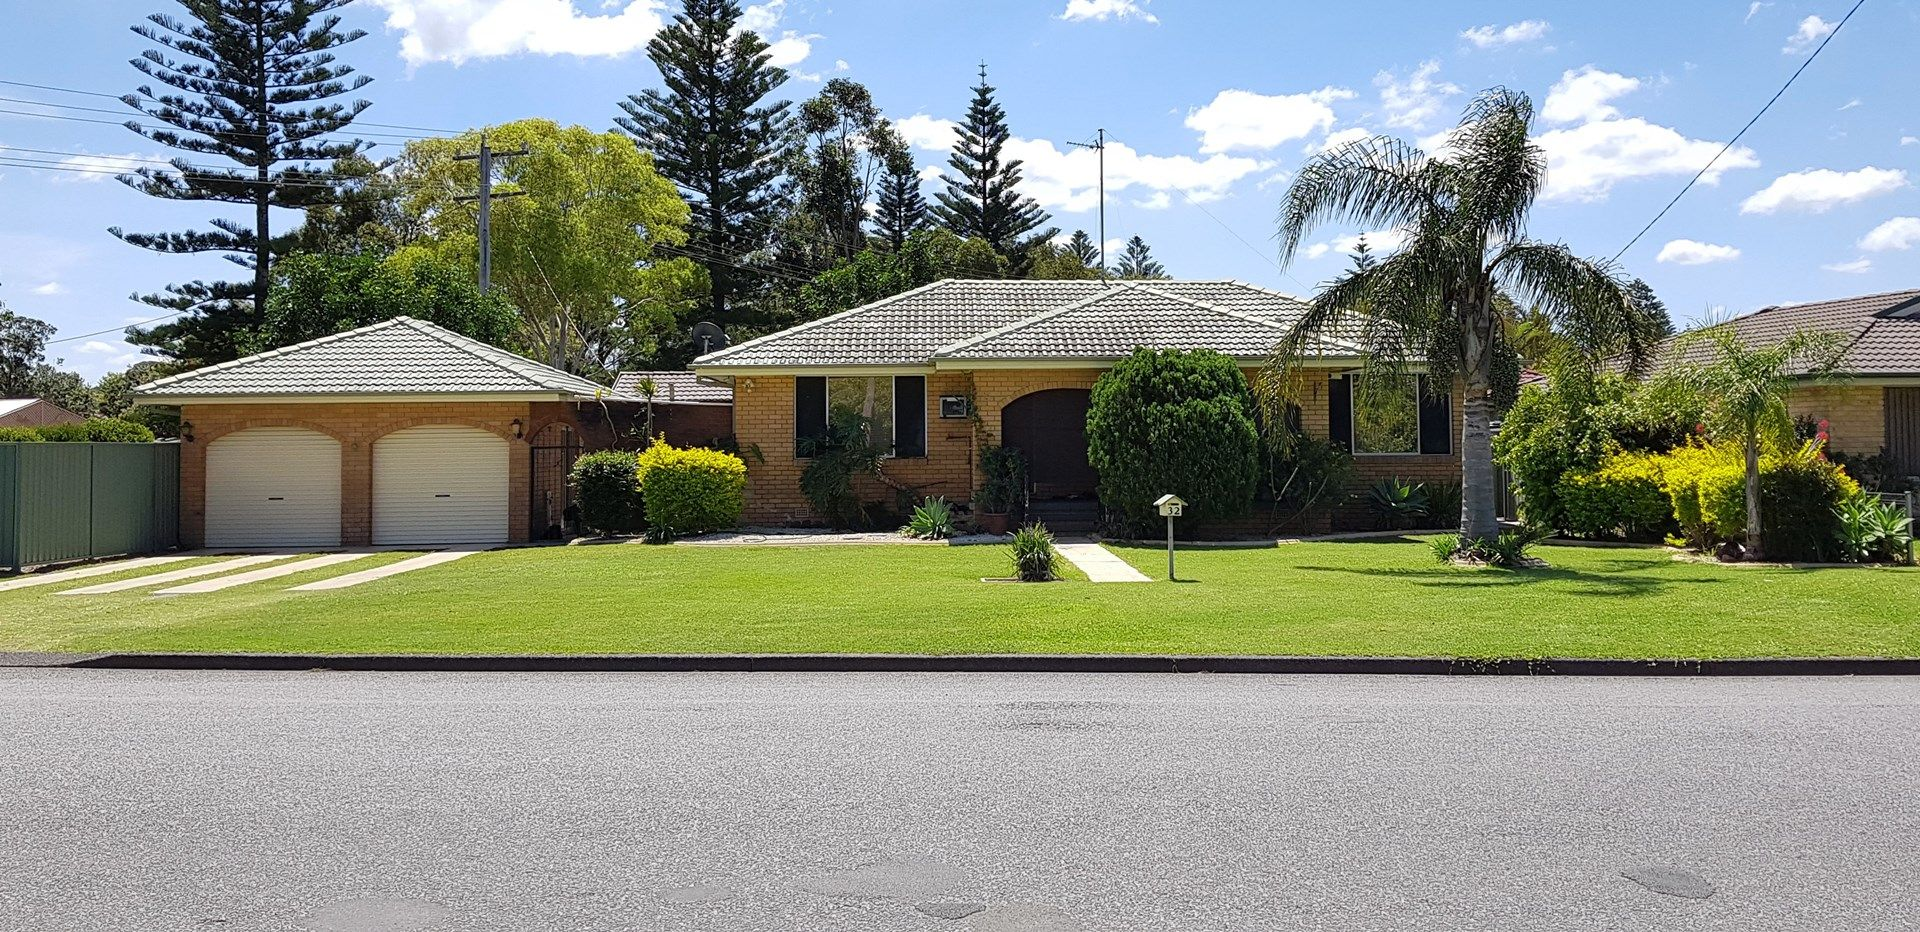 32 Beatty Boulevard, Tanilba Bay NSW 2319, Image 0